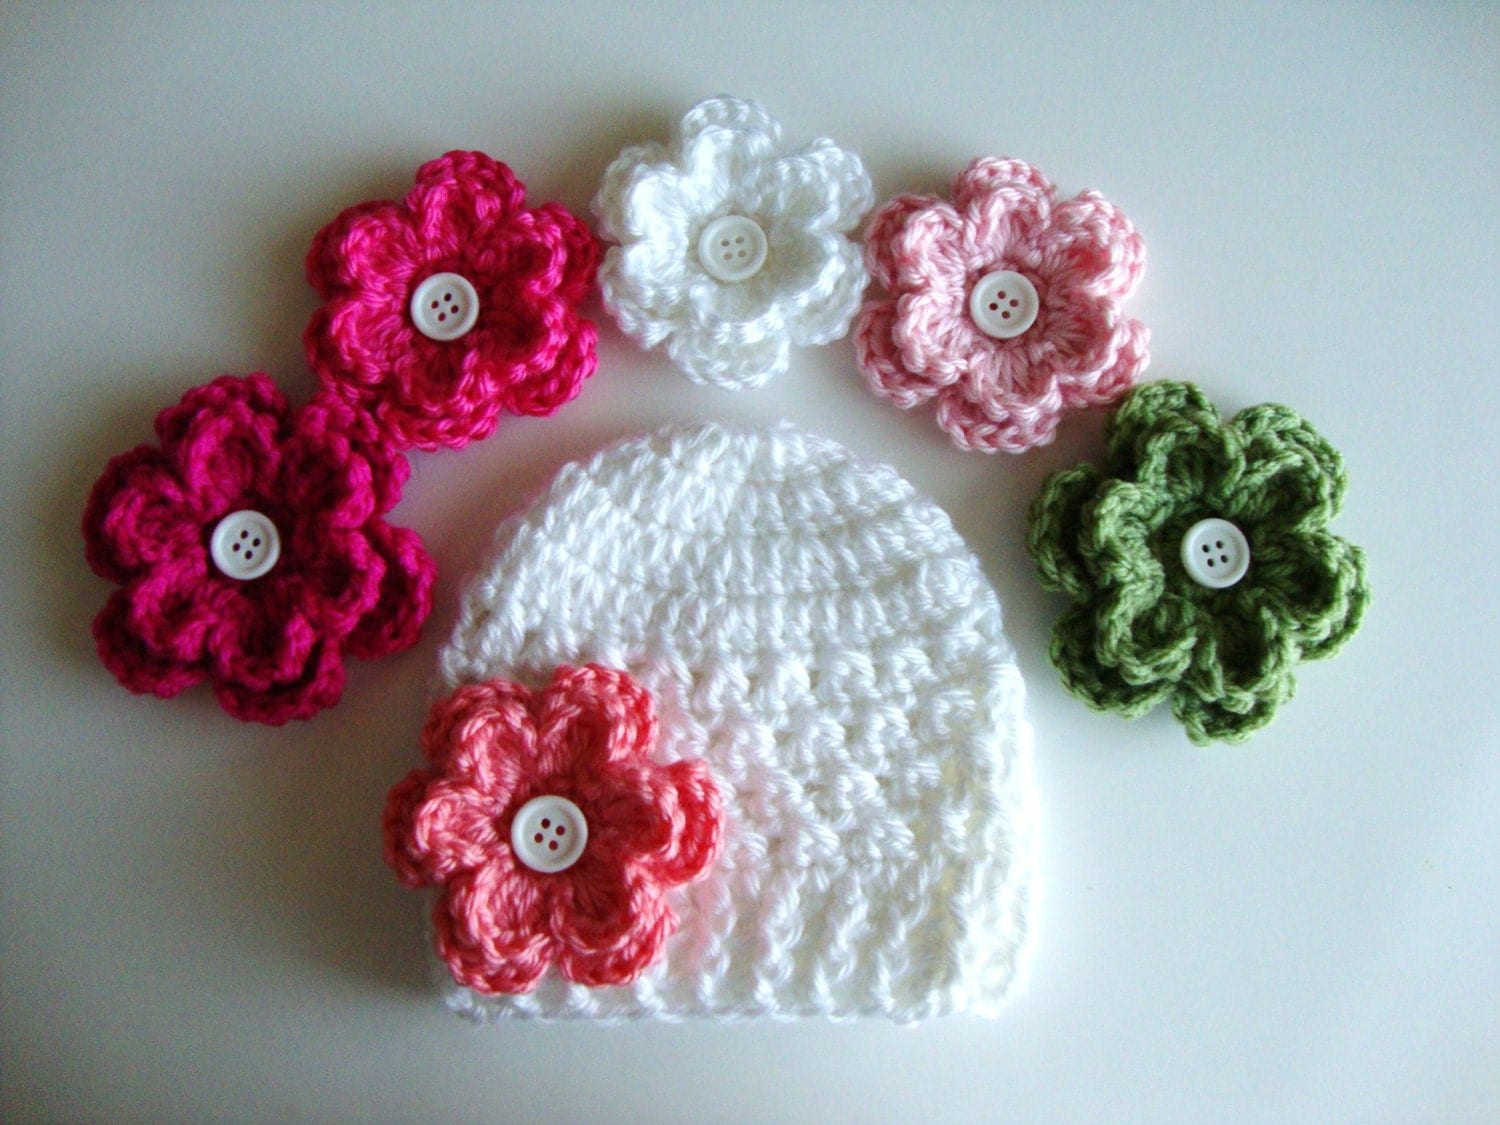 Crochet Beanie Pattern With Flower : Baby Girl Crochet Flower Hat Pattern Preemie up to 12 months